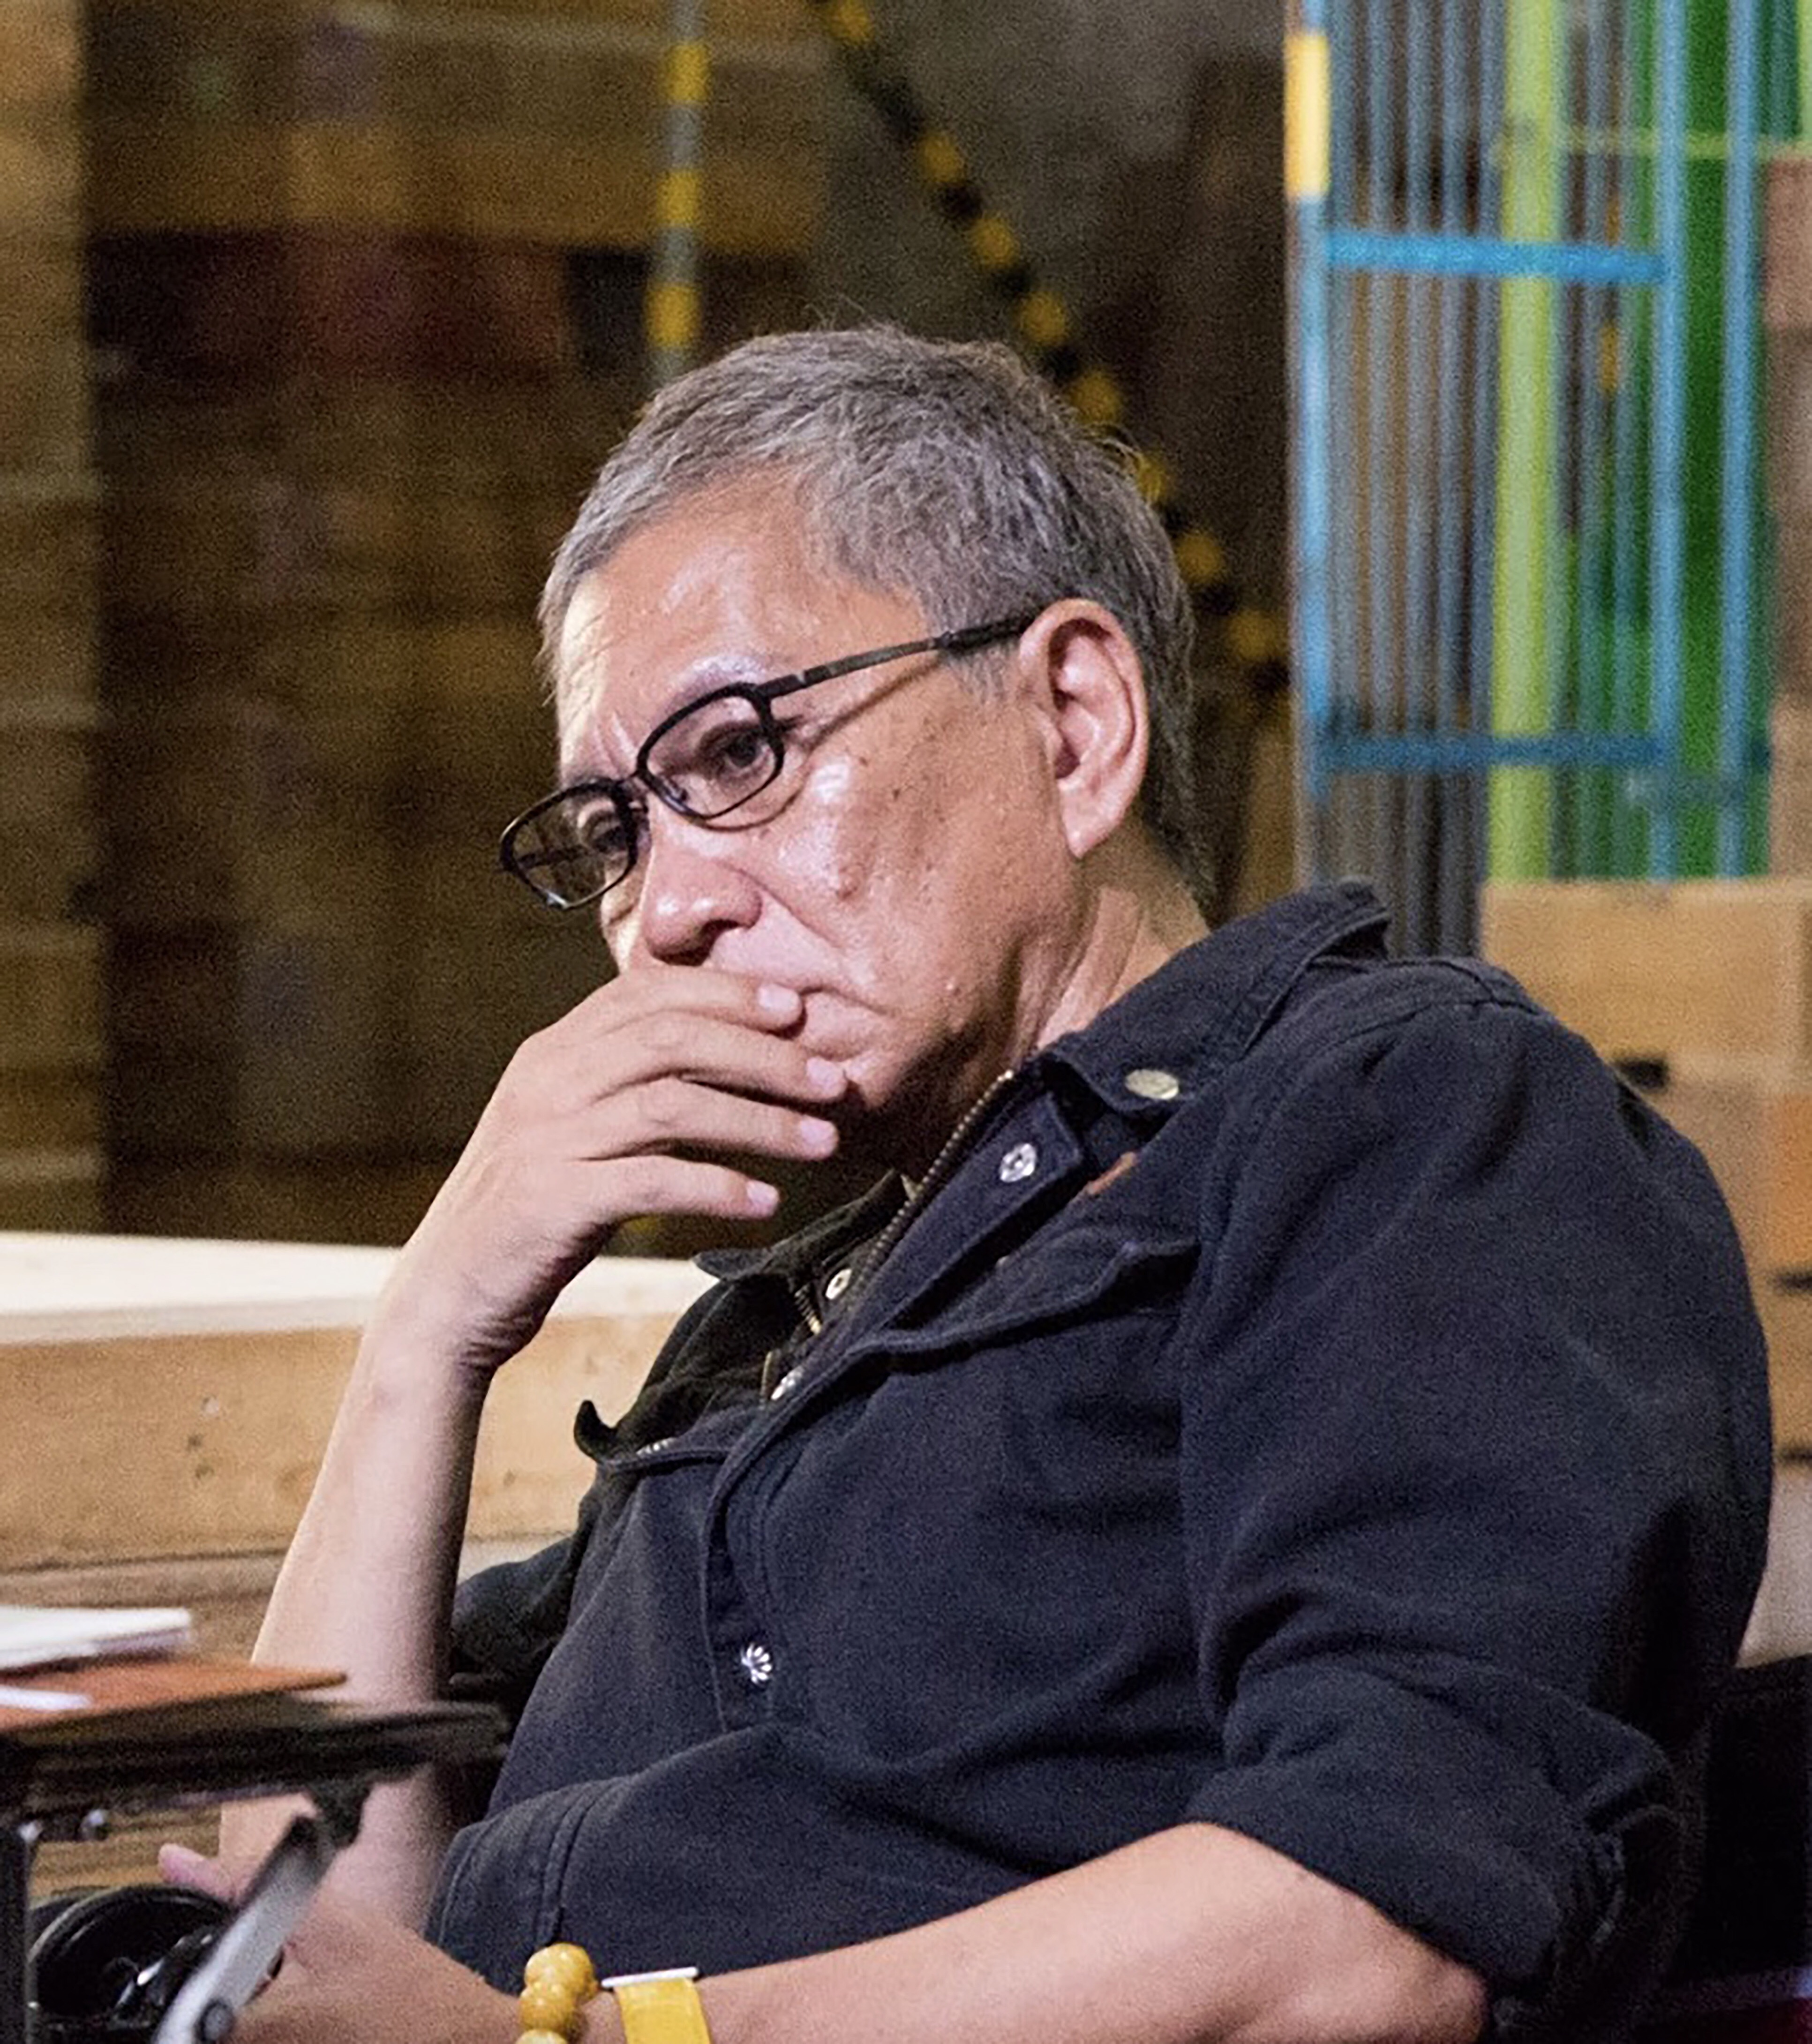 Master of Japanese cult cinema, veteran filmmaker Takashi Miike was conferred the Honorary Award, which recognises individuals who have made exceptional and enduring contributions to Asian cinema. Photo Courtesy: SGIFF